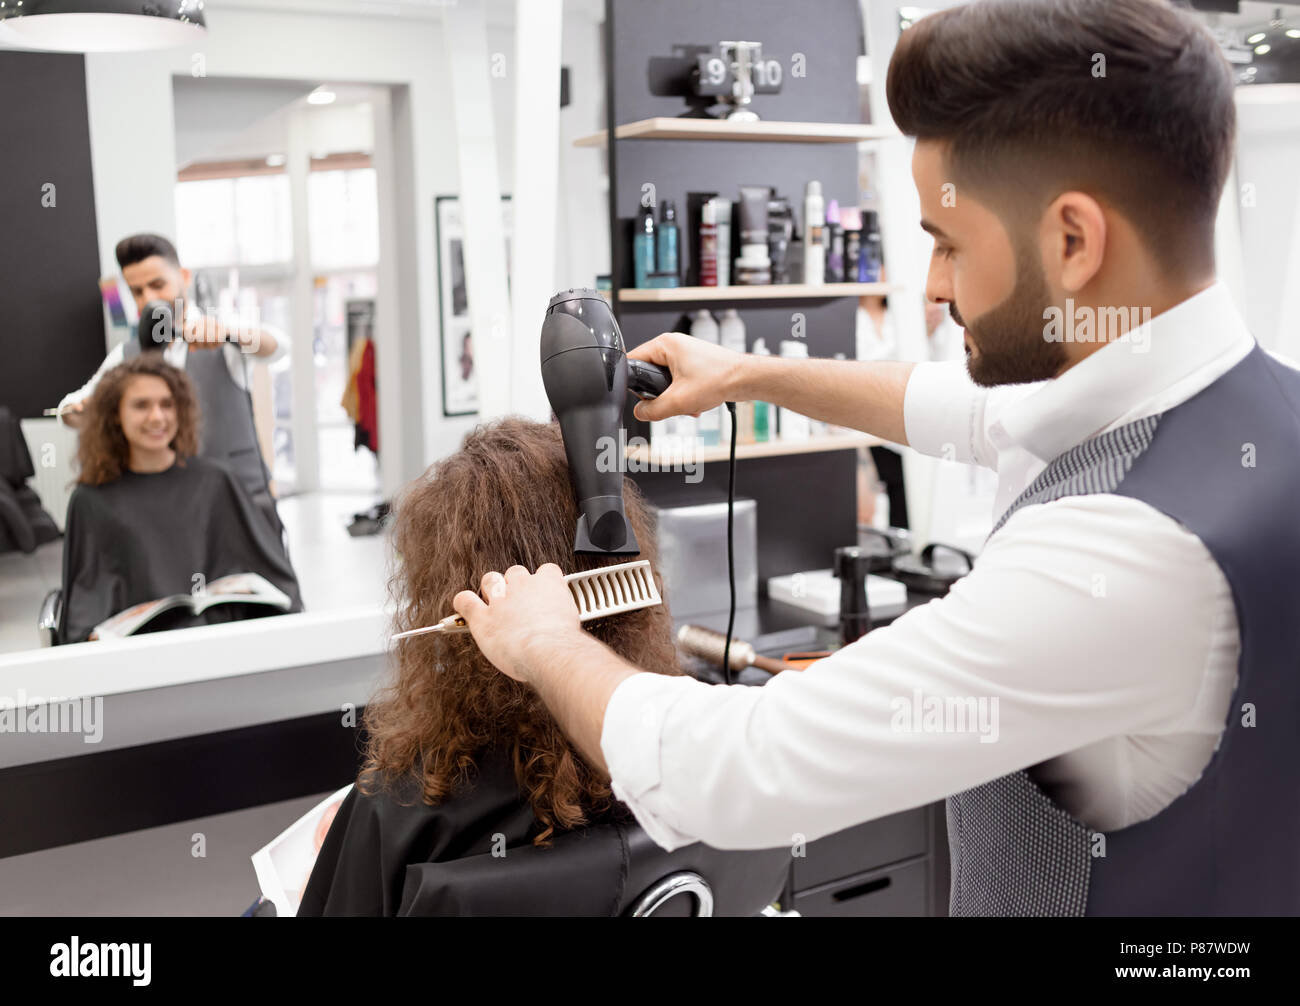 Backview of hairstyler doing hairdress for smiling curly female client. Blurred reflection in big mirror. Using plastic brush and hair dryer. Wearing  - Stock Image